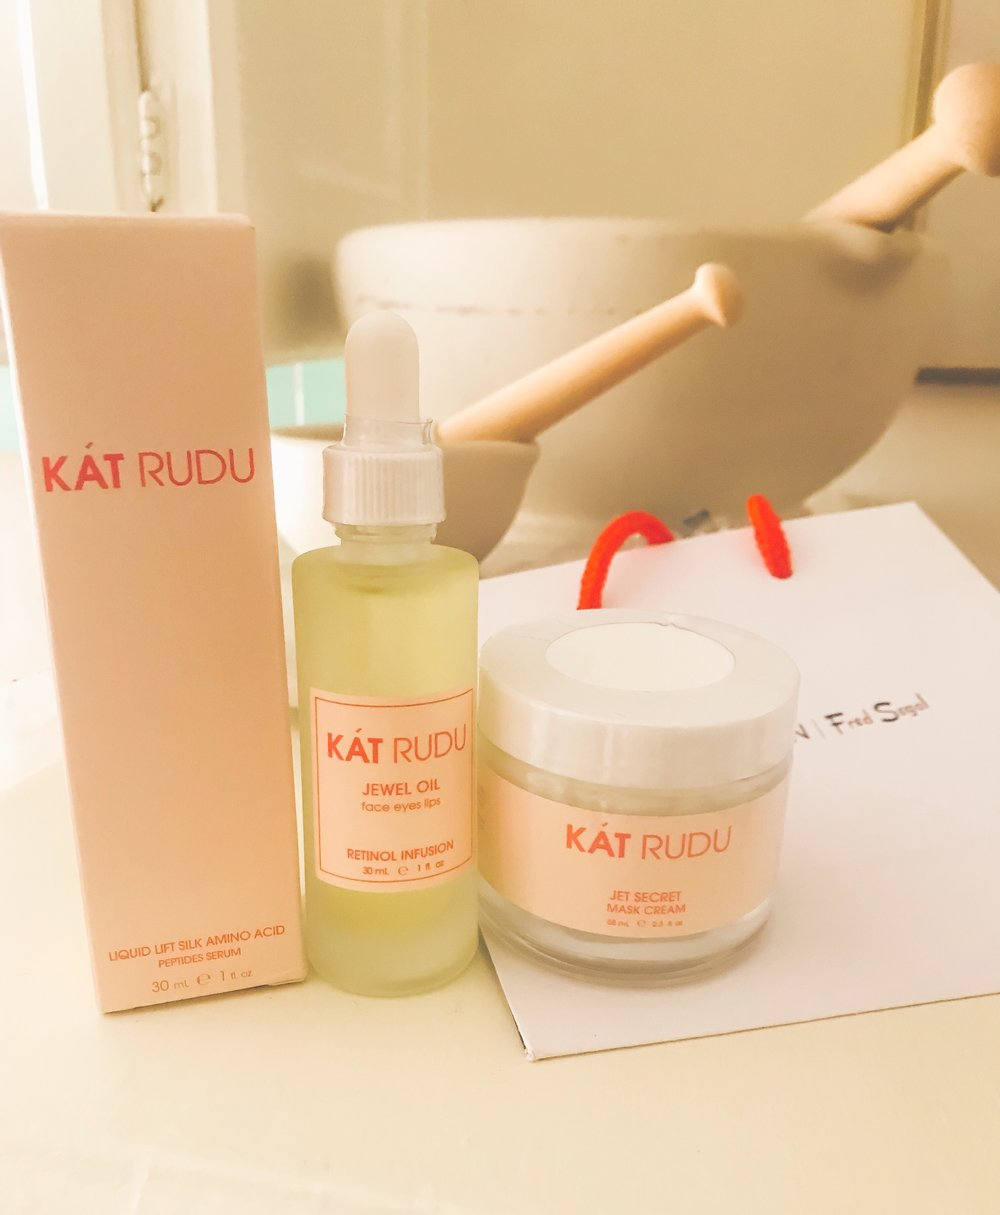 Mindful SkinCare Moments - Keeping my skincare routine up while traveling is also part of my mobile mindfulness practice. Taking the extra time to still practice your self-care while you are on the go really contributes to your wellbeing and heart's fulfillment.I have shared about my dear friend Kat Rudu's special skincare products before on my instagram stories. Her products are highly intentional, medical grade, naturally sourced and very high vibe. I can't recommend her skincare enough, and I always bring along her Jet Secret Travel Kit when I am jet-setting around myself.Using the same skincare products that I have at home also gives me a sense of grounding while I am on-the-go.Kat has offered us 15% off her Jet Secret Travel Kit with the code LITFROMWITHIN.